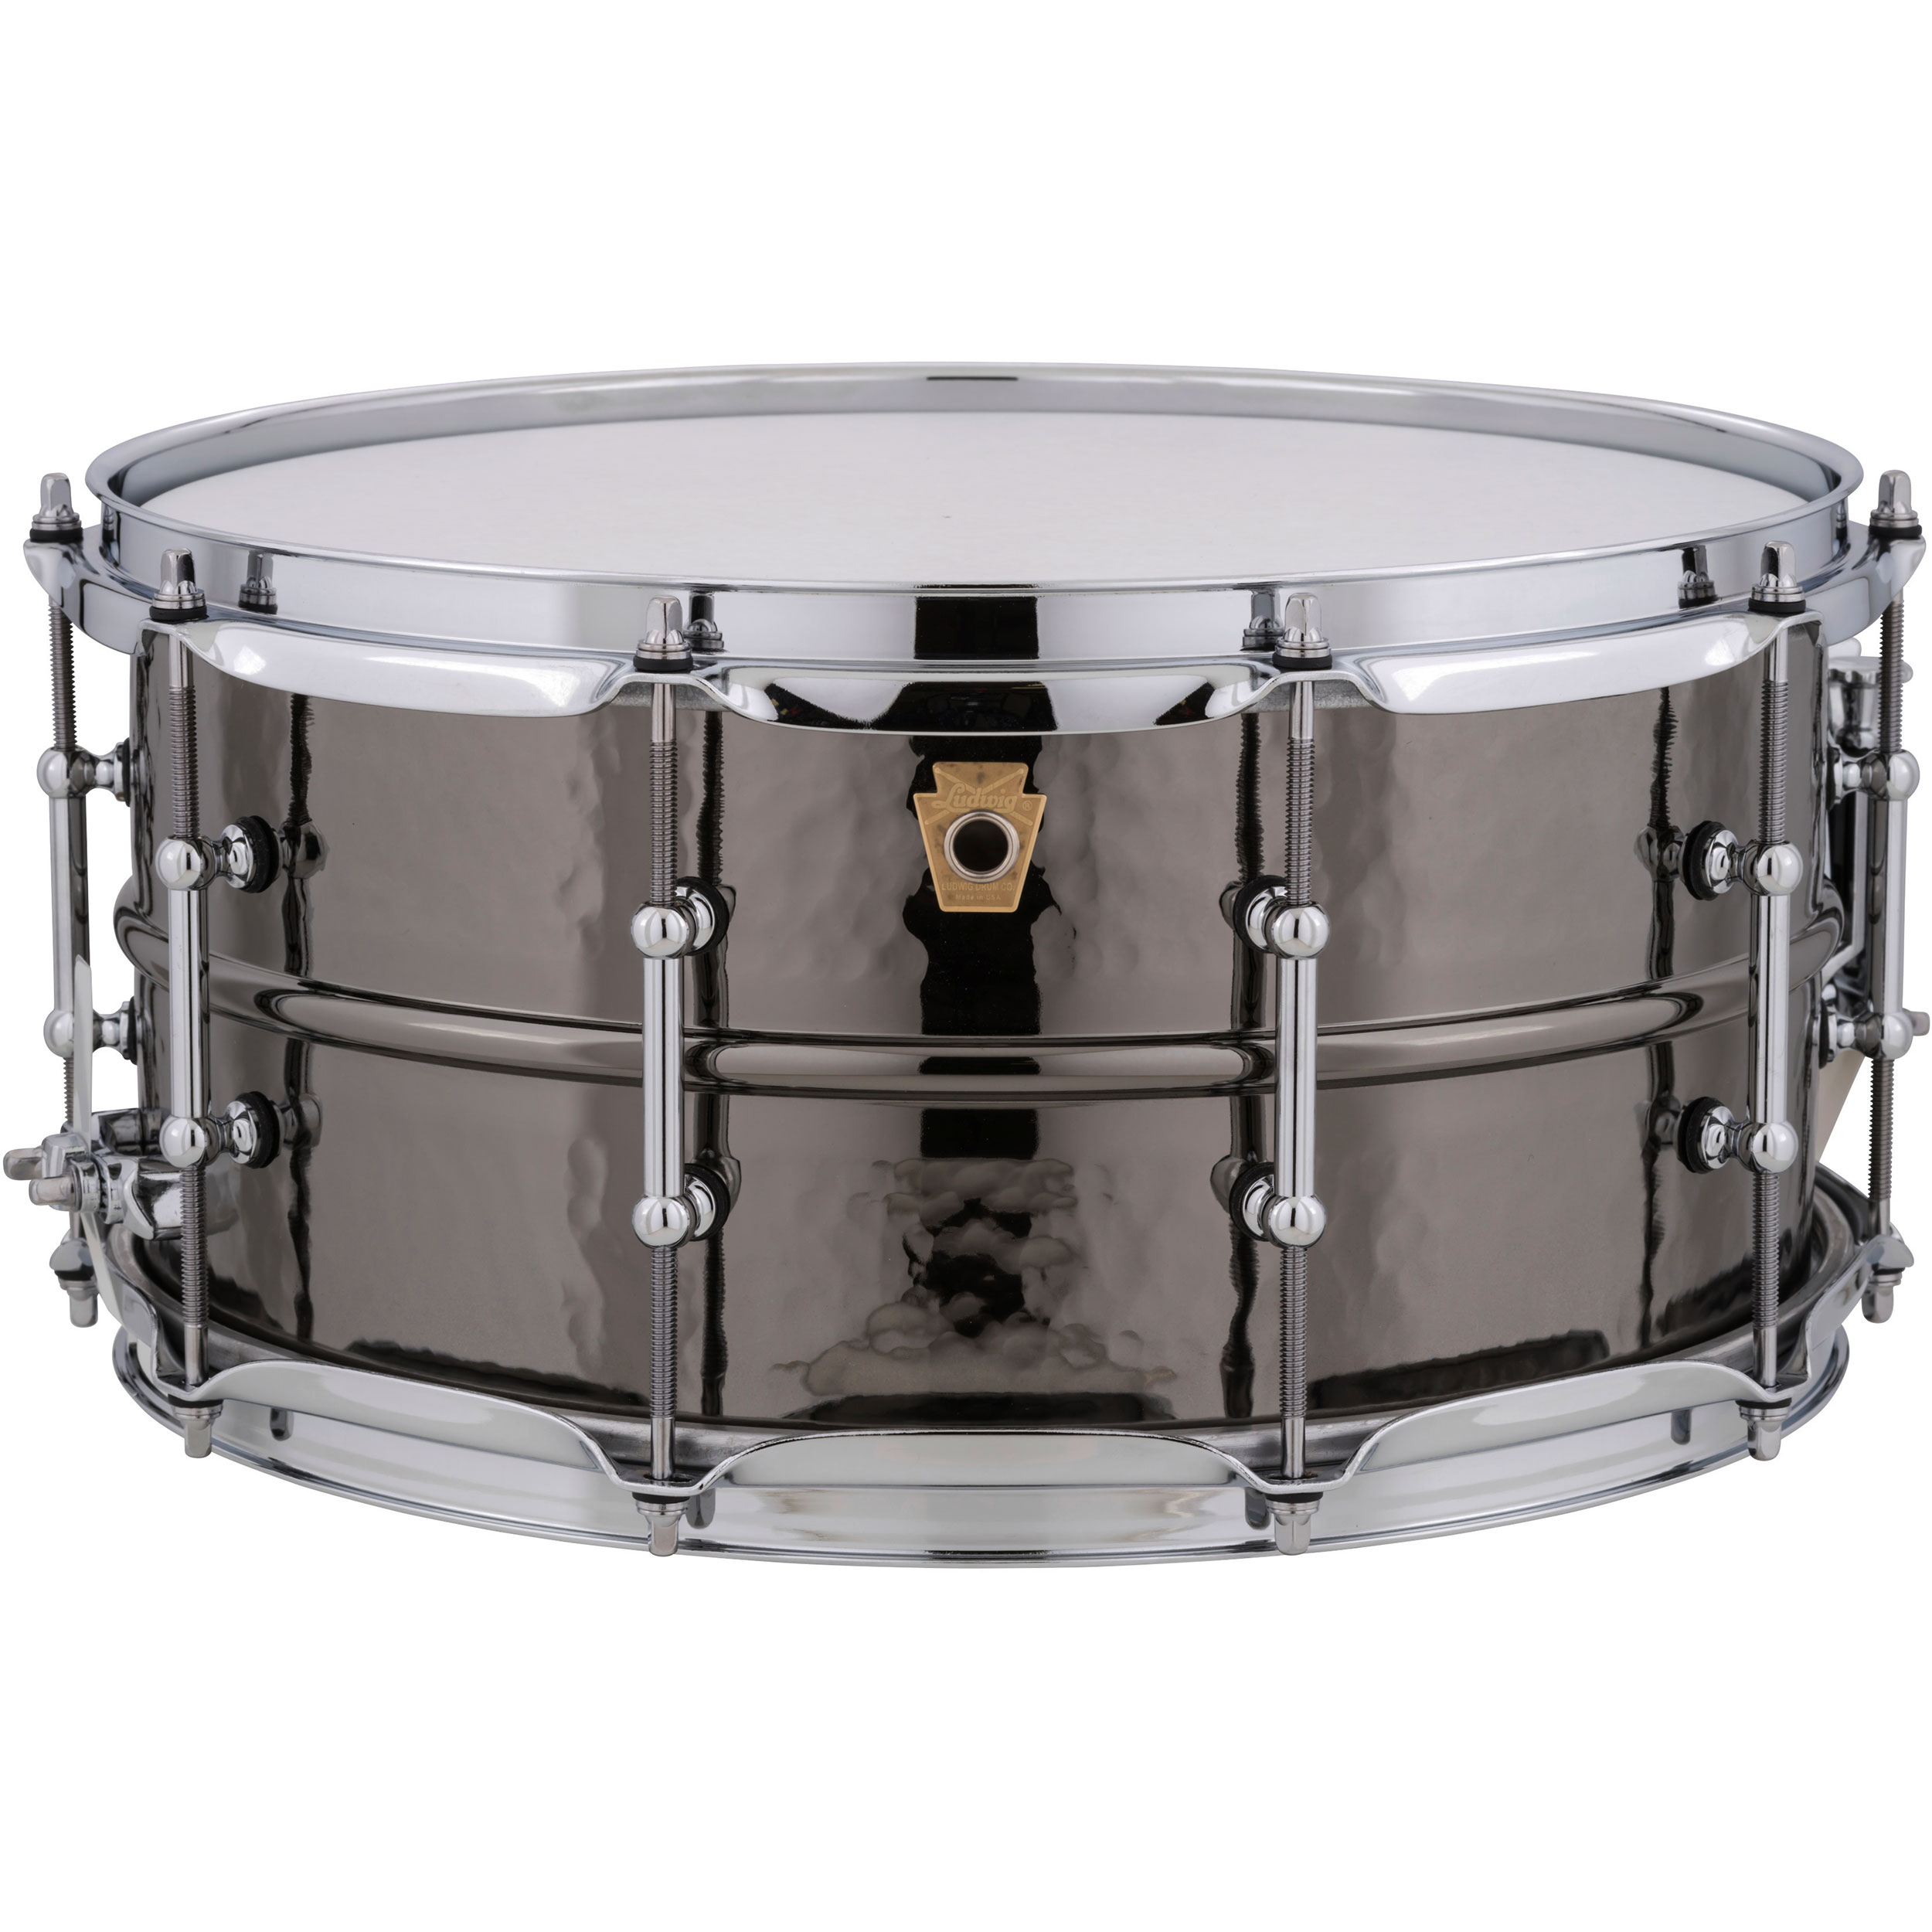 "Ludwig 6.5"" x 14"" Hammered Black Beauty Snare Drum with Tube Lugs"